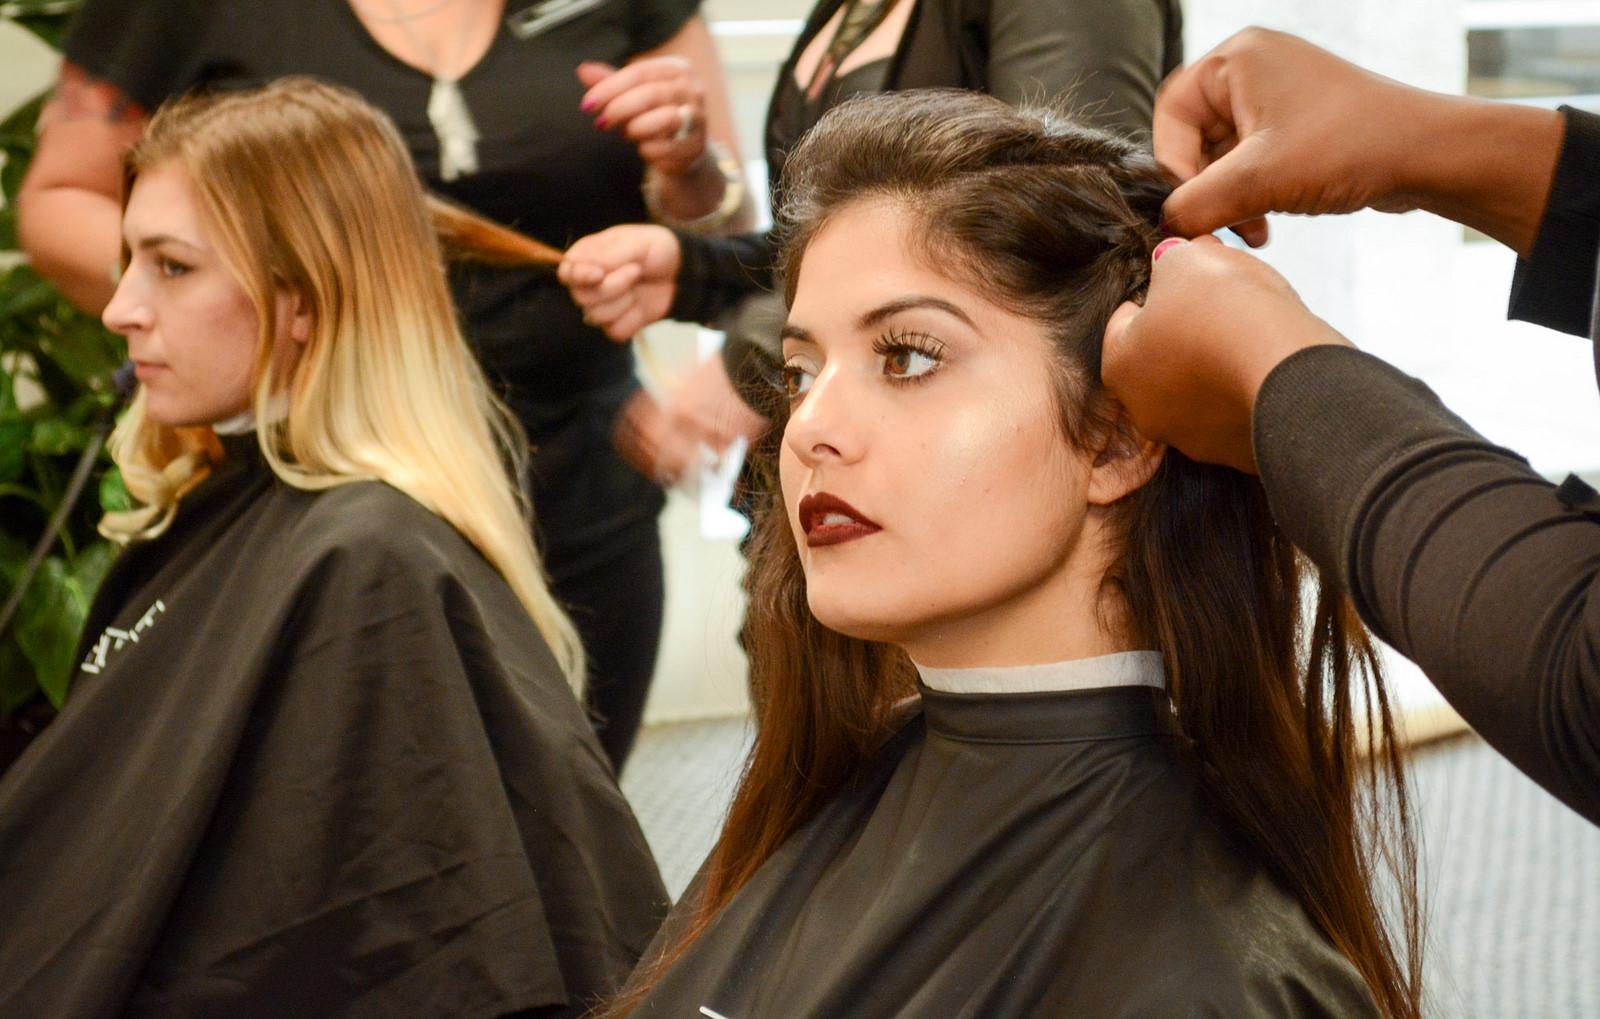 Models have their hair done before show